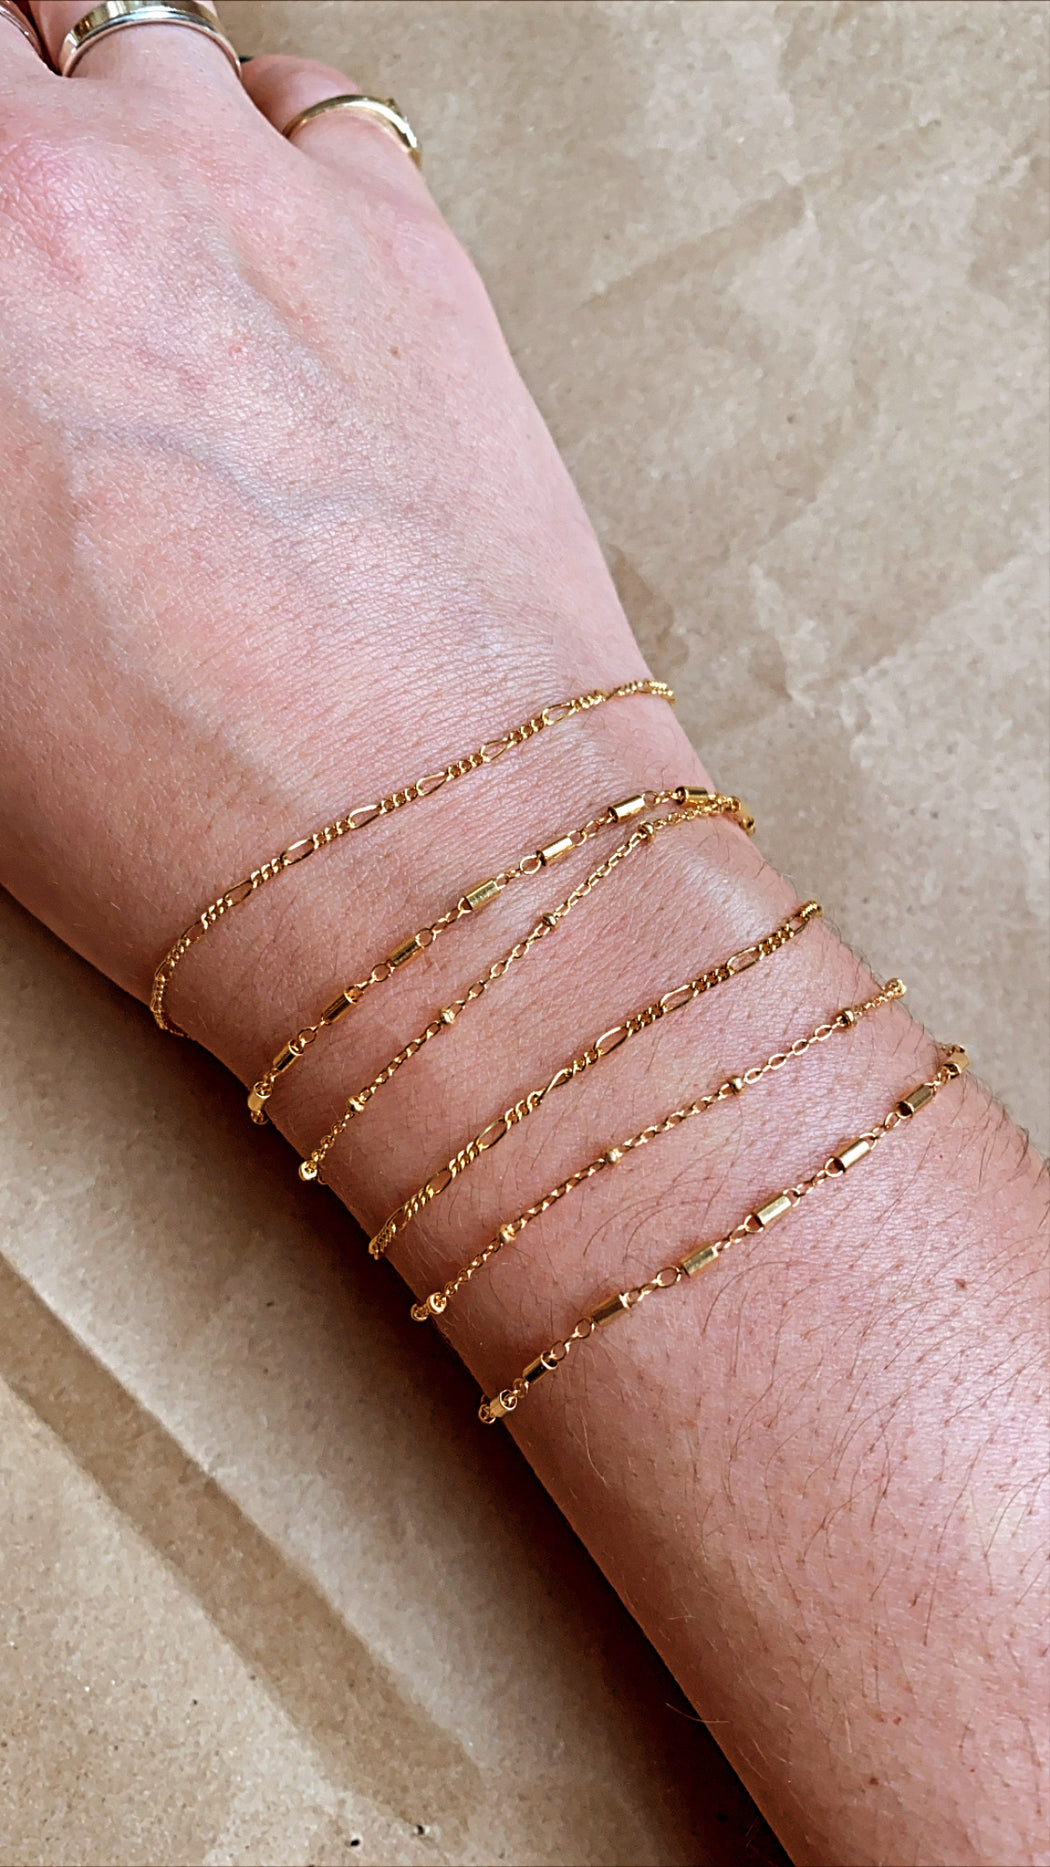 The 14k Gold Filled Bracelet Stack